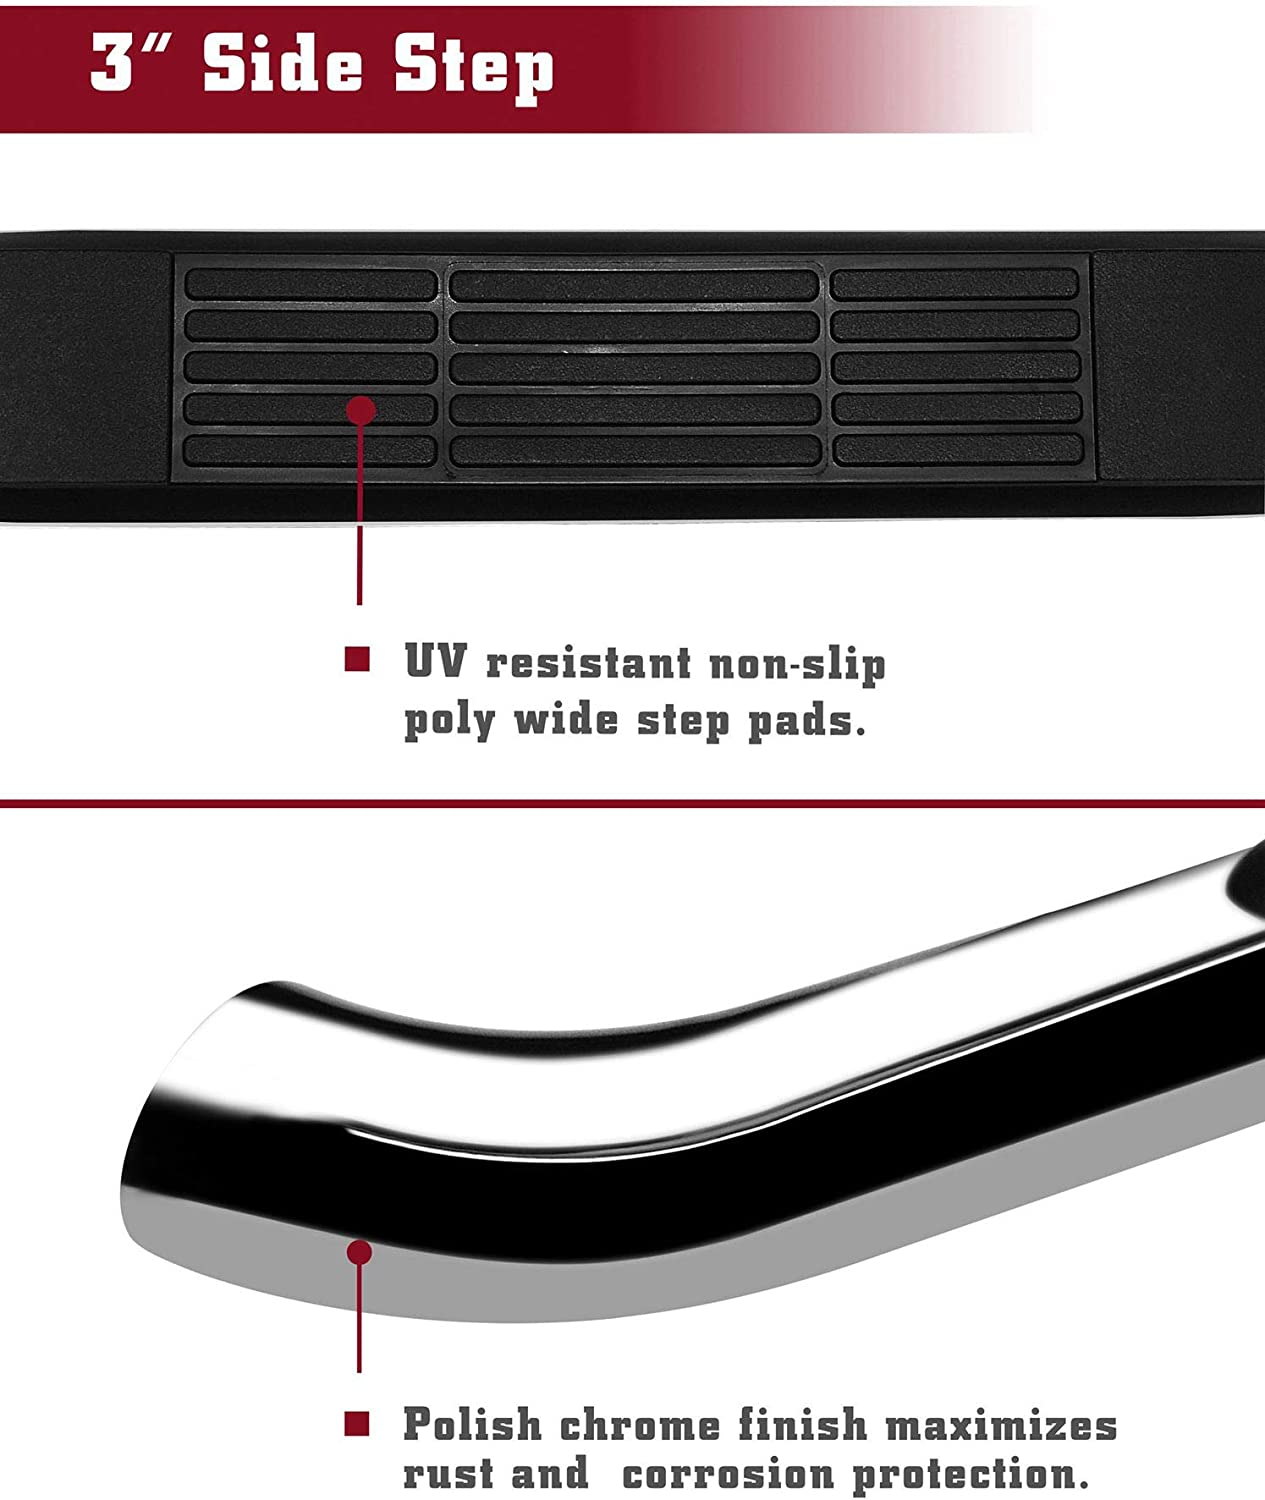 """2pcs Running Boards TAC Side Steps Running Boards Fit 2017-2020 Honda Ridgeline SUV 3/"""" Stainless Steel Chrome 304 Side Bars Nerf Bars Off Road Accessories"""